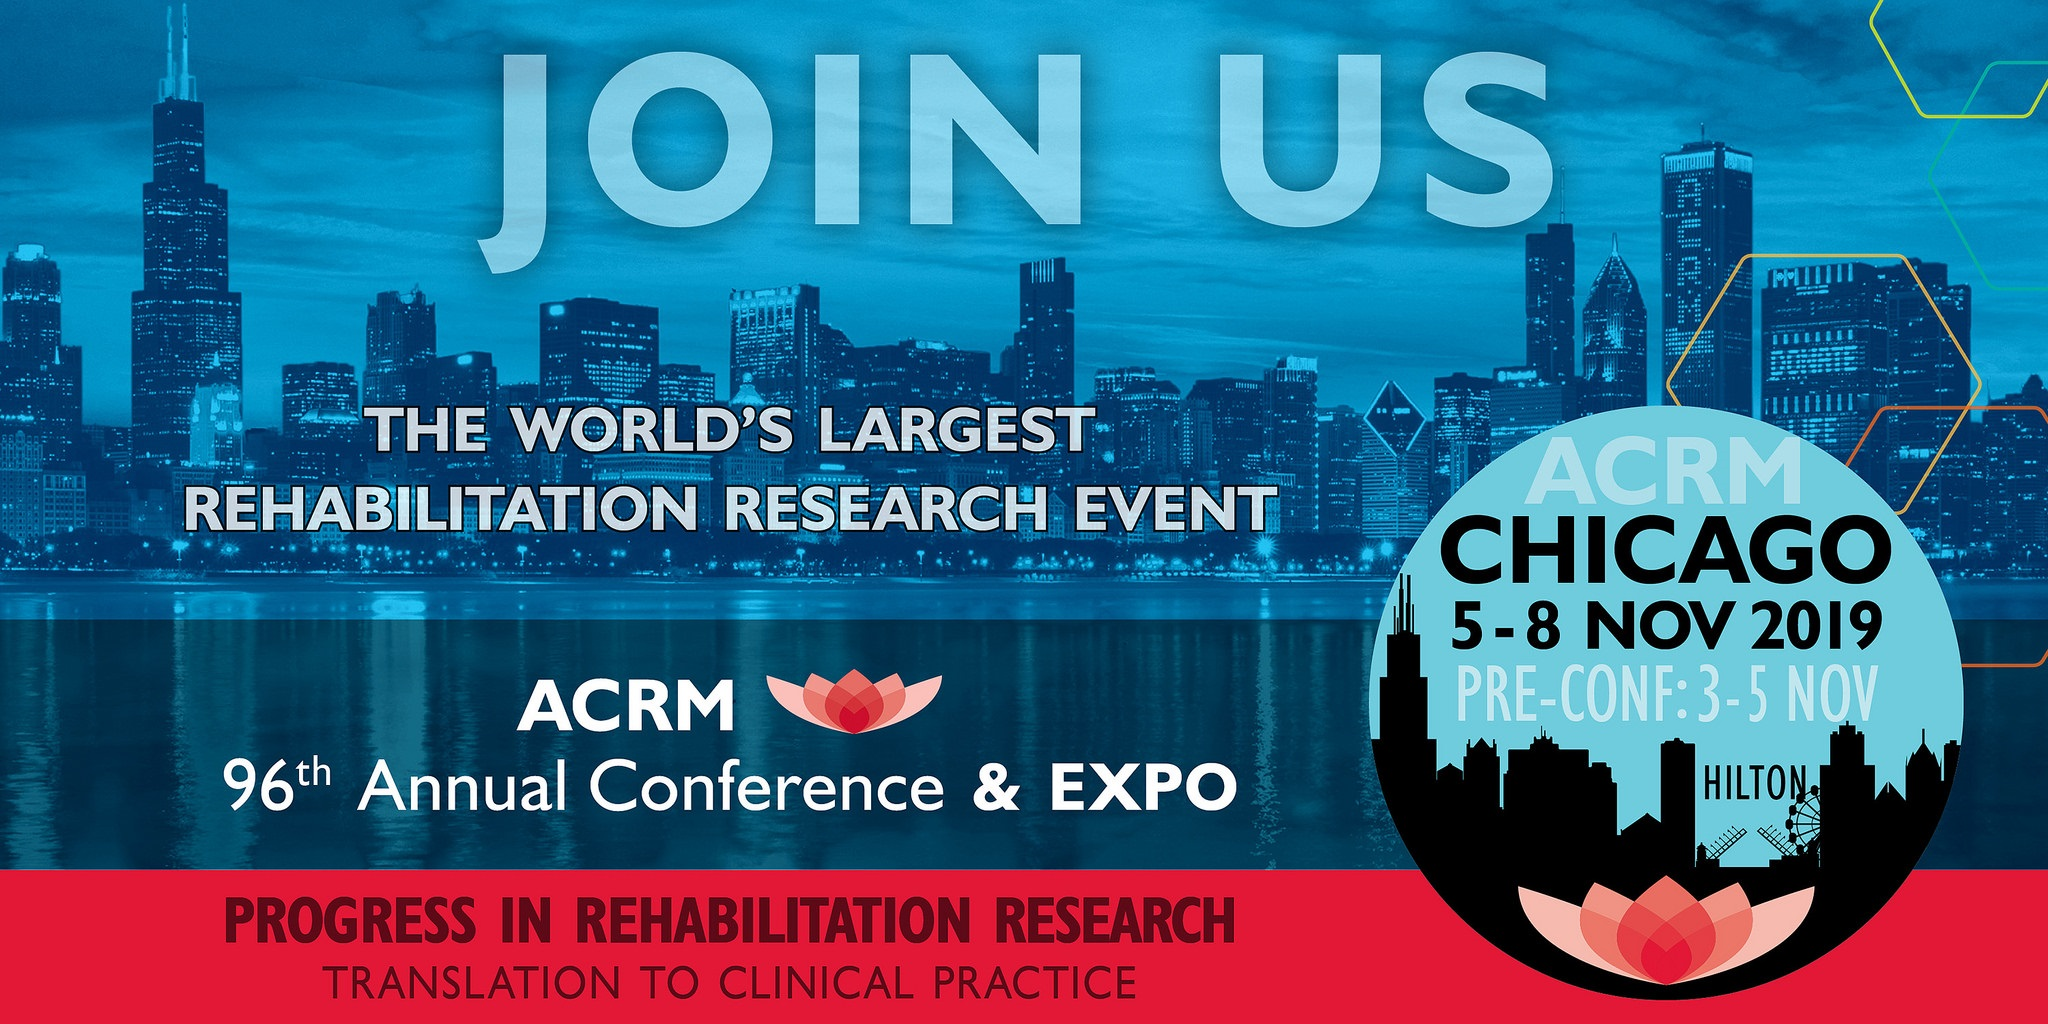 Join us in Chicago for the ACRM Annual Conference 3 - 8 November 2019